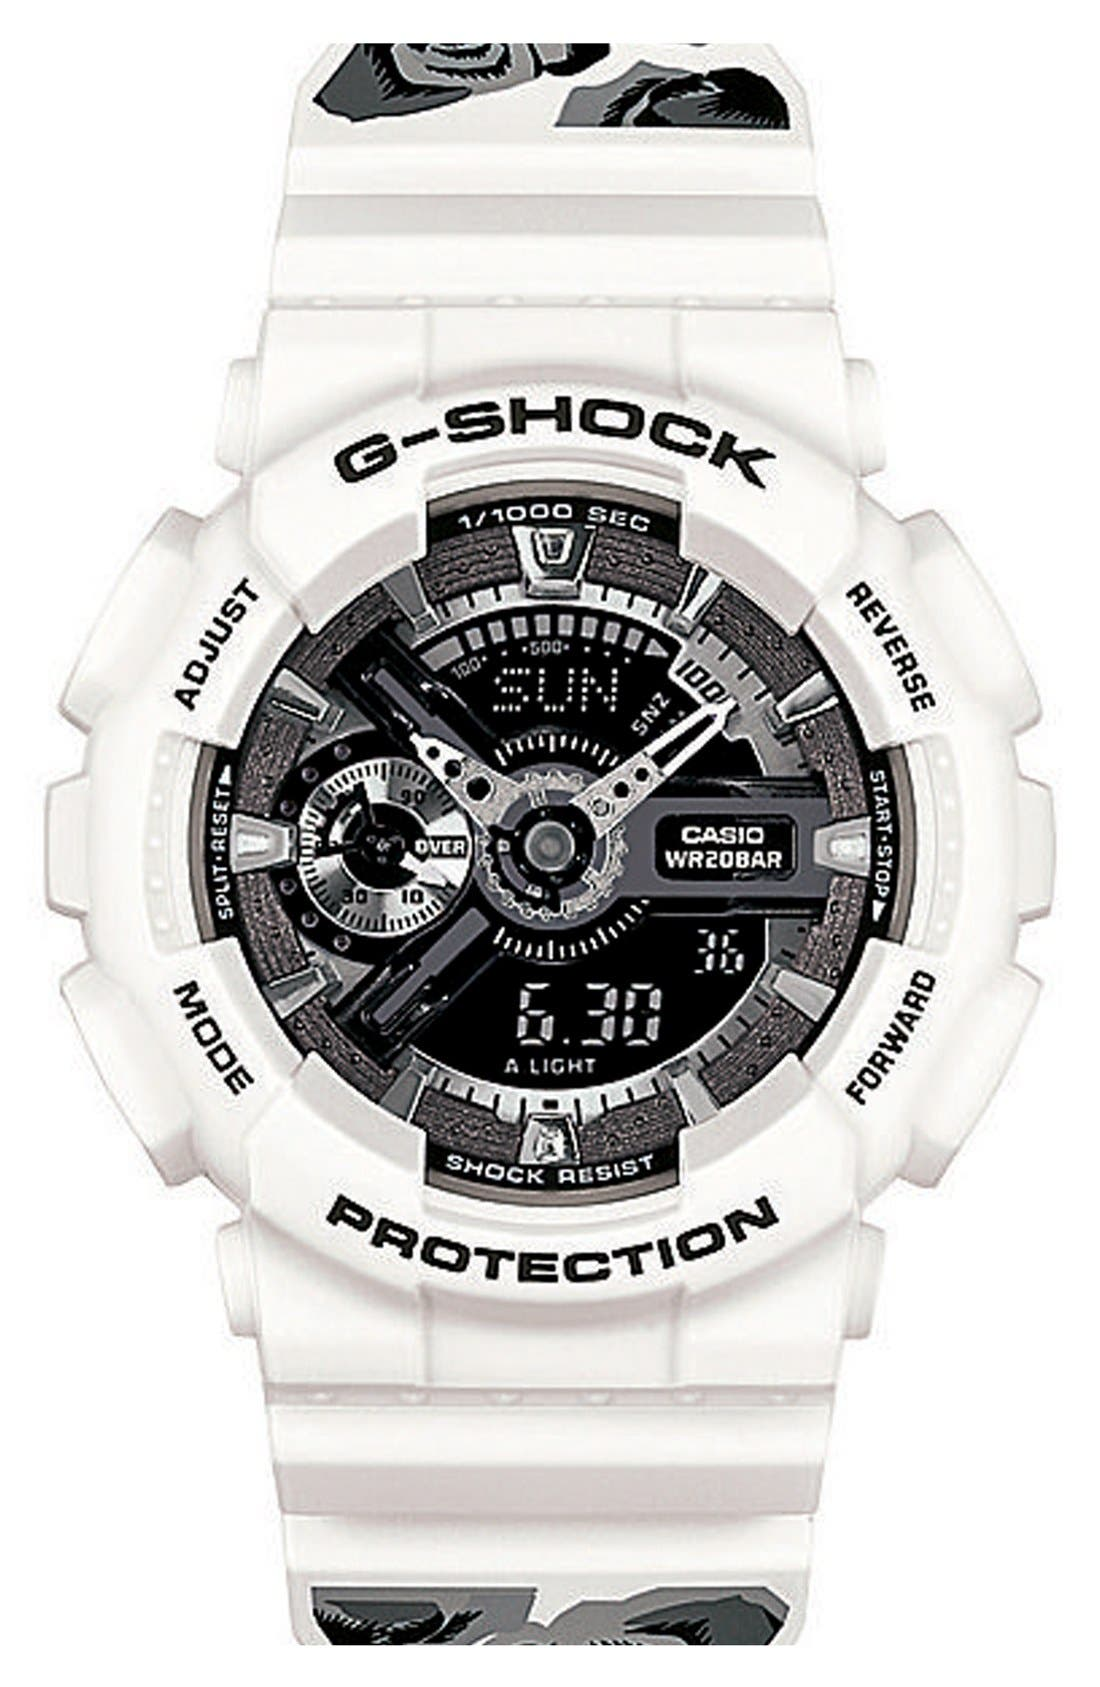 Alternate Image 1 Selected - G-Shock 'S-Series' Floral Band Resin Ana-Digi Watch, 49mm